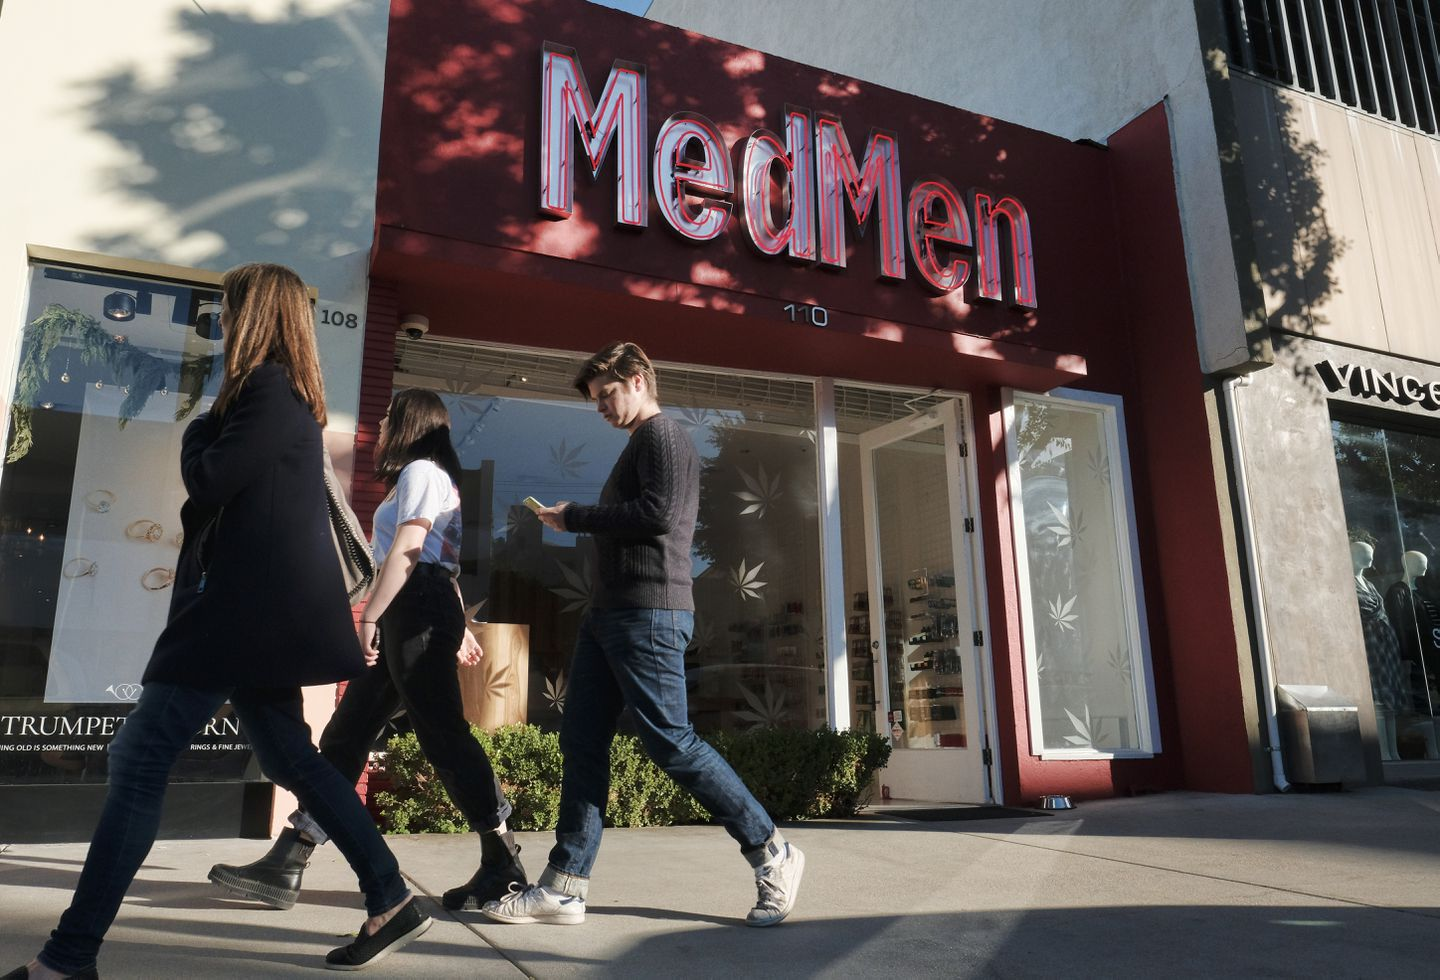 Pedestrians walked past one of the MedMen marijuana dispensaries in Los Angeles.